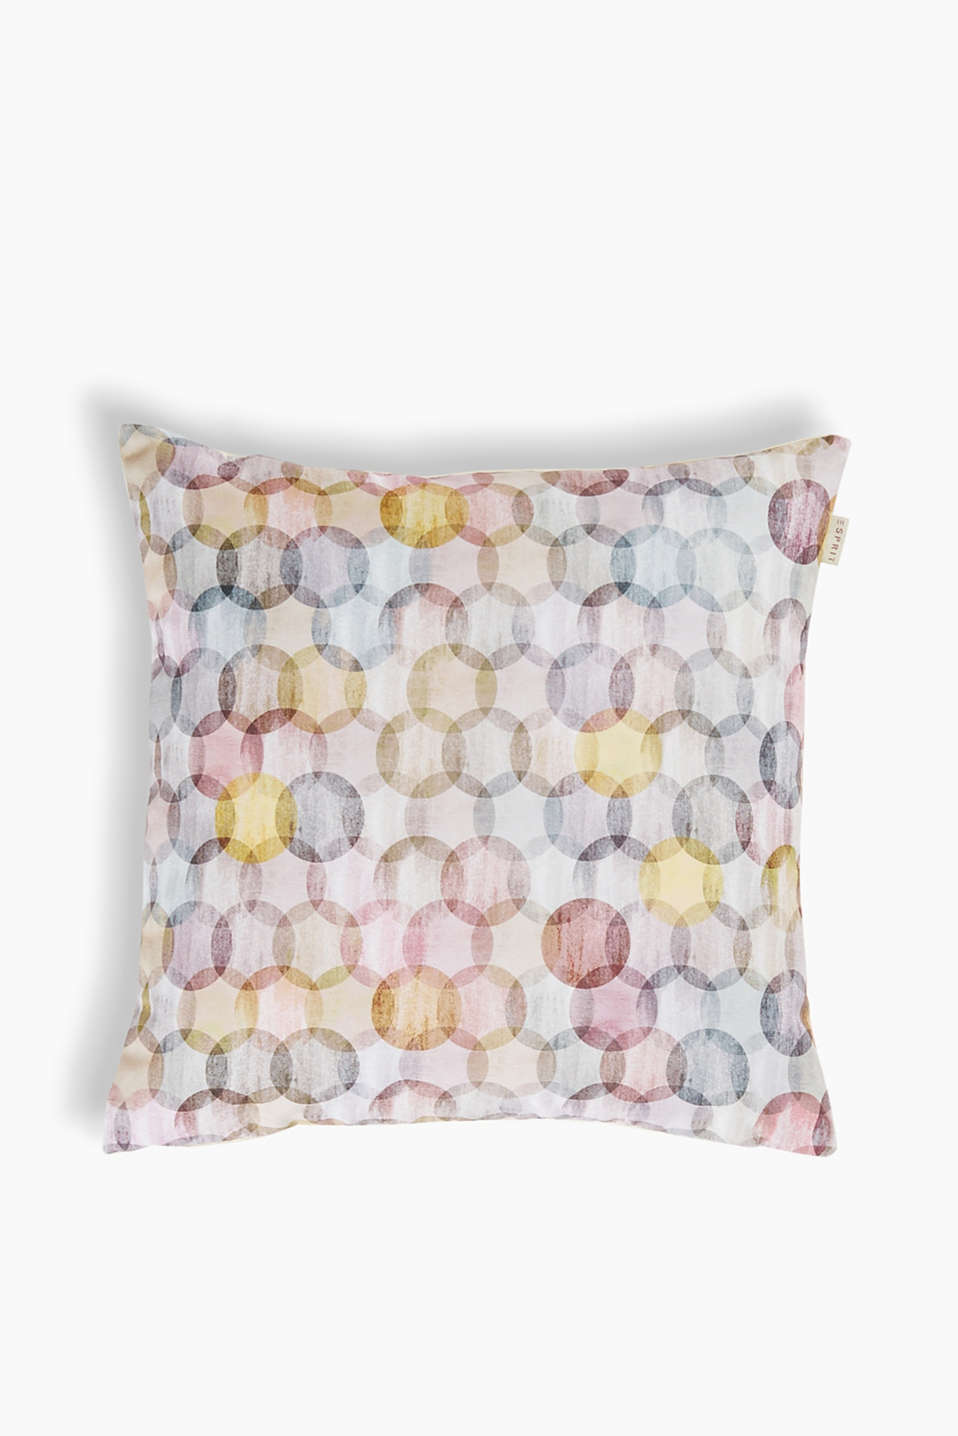 Esprit - Sio cushion cover with a digital print